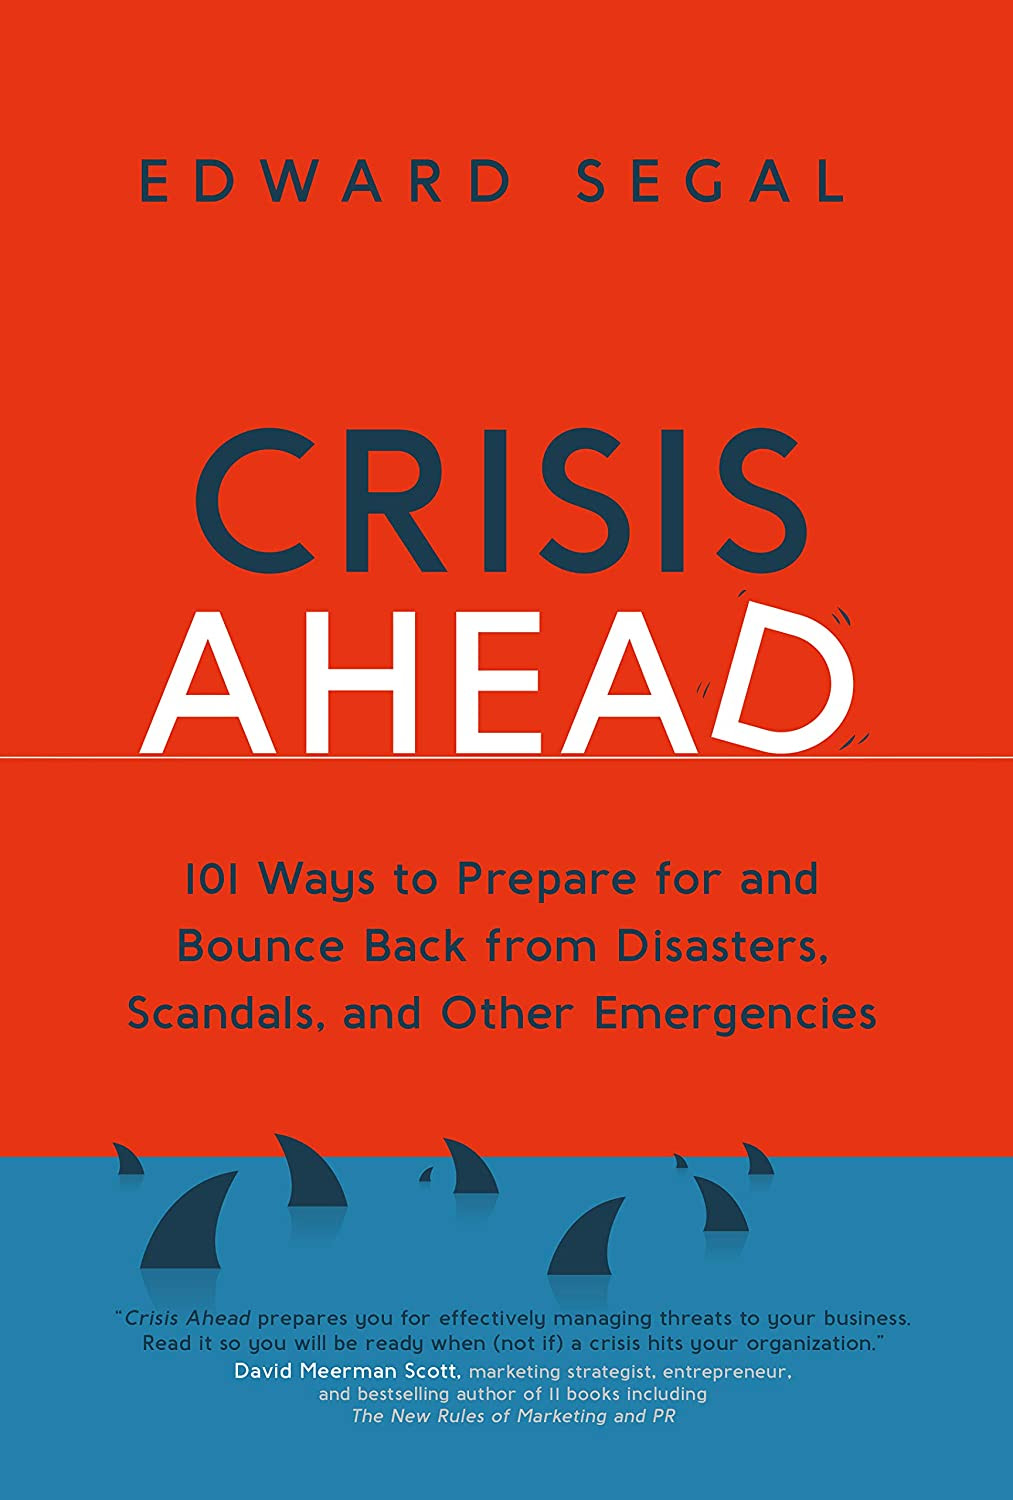 Edward Segal -- Crisis Management Expert